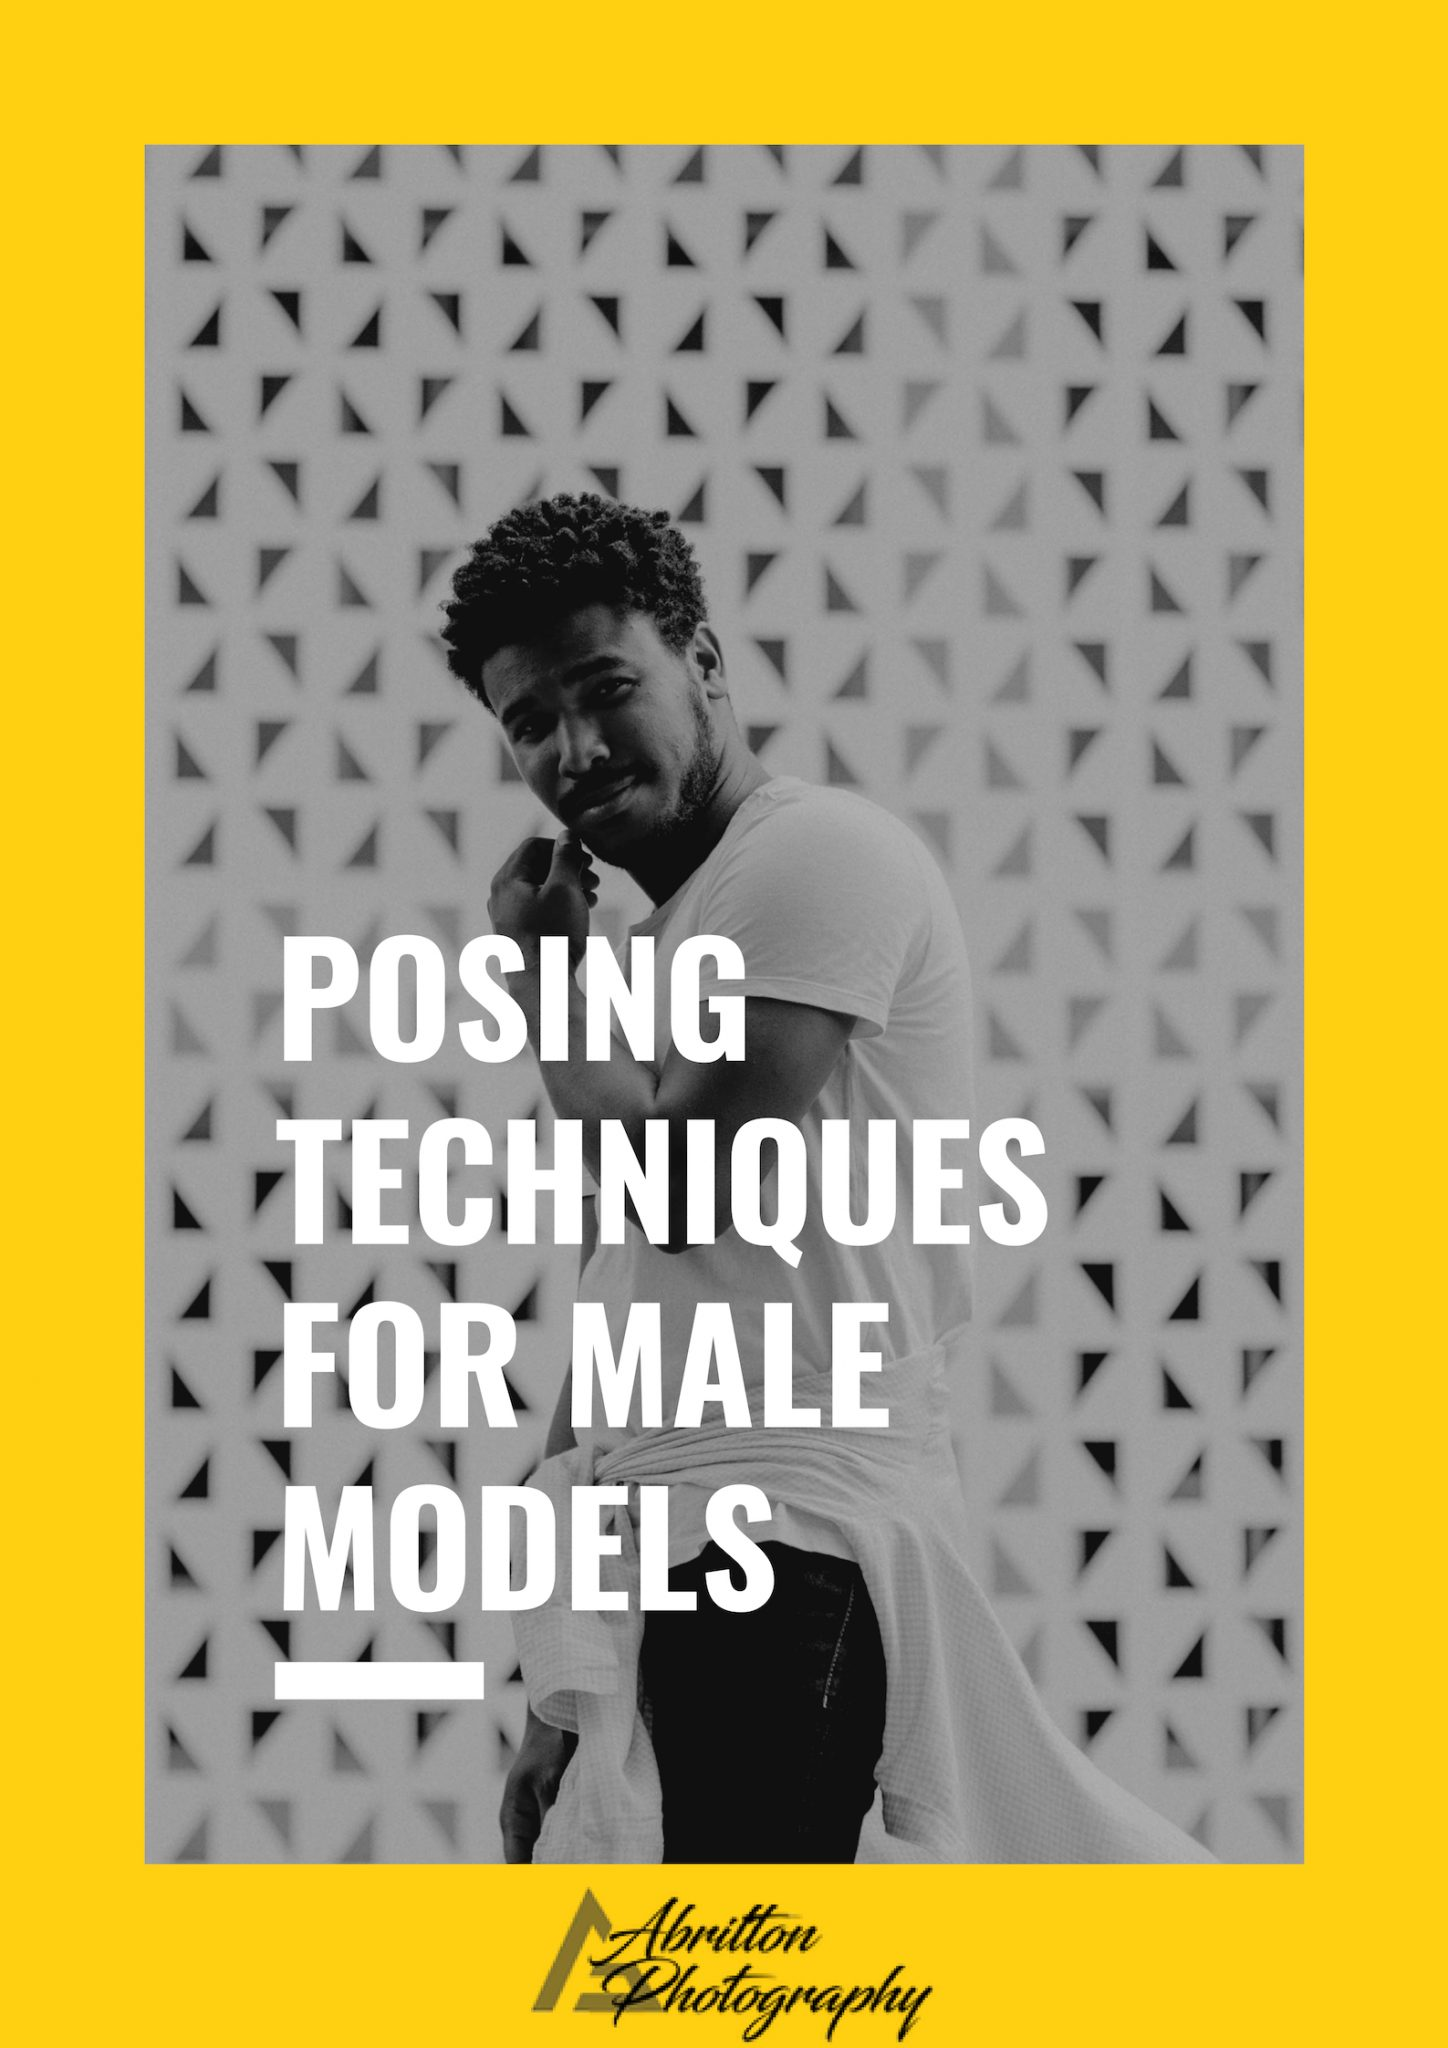 Posing Techniques for Male Models